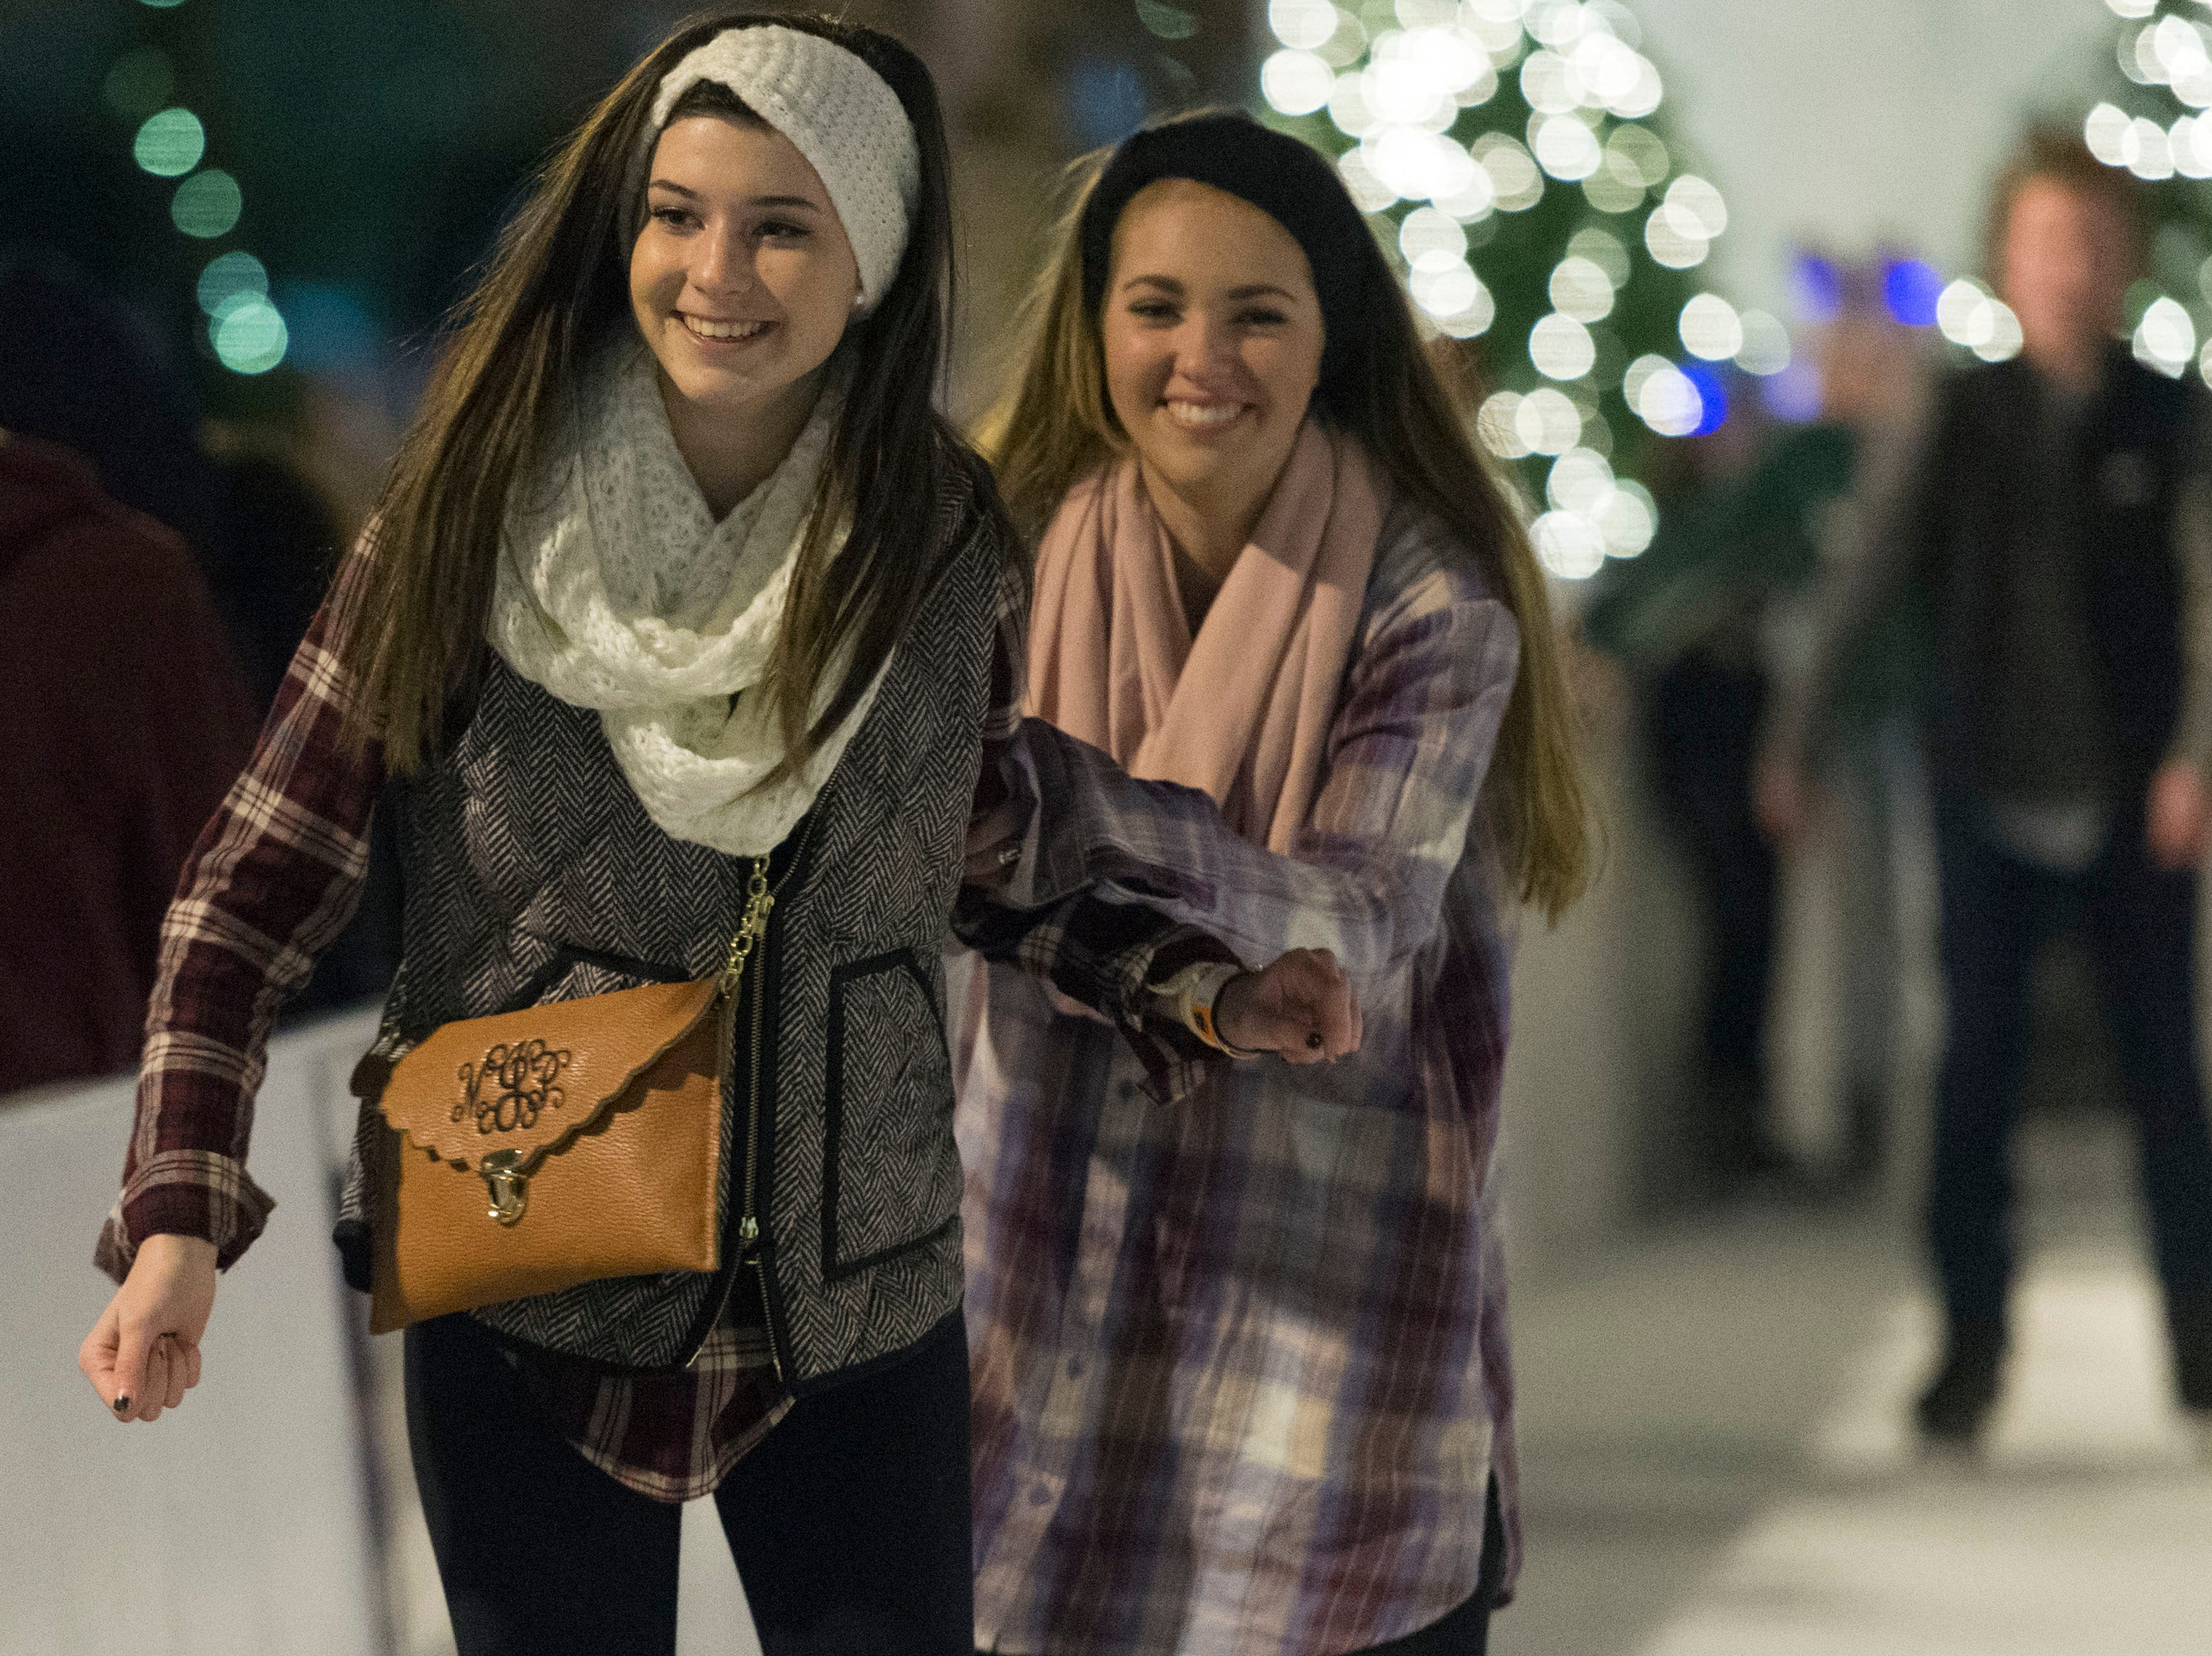 Mallory Inman, left, and Grace Benson spend part of their New Year's Eve ice skating at Market Square, Thursday, December 31, 2015. The two are not staying out until midnight and plan to watch the Times Square's New Year's Eve celebration from the comfort of their home.